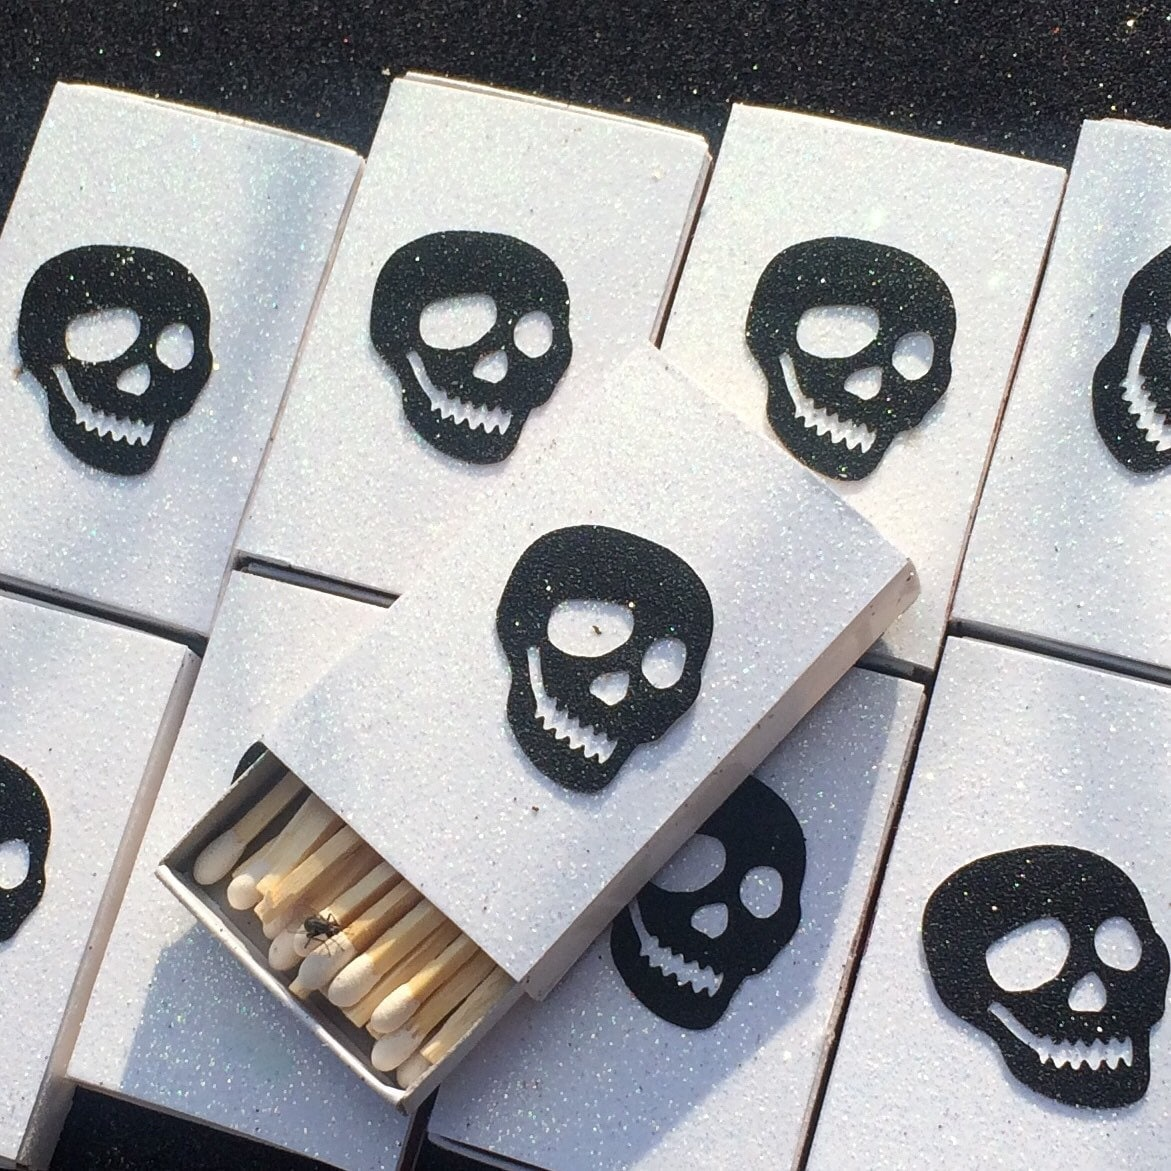 8 Sugar Skull Matchboxes Party Wedding Favors Day of the Dead